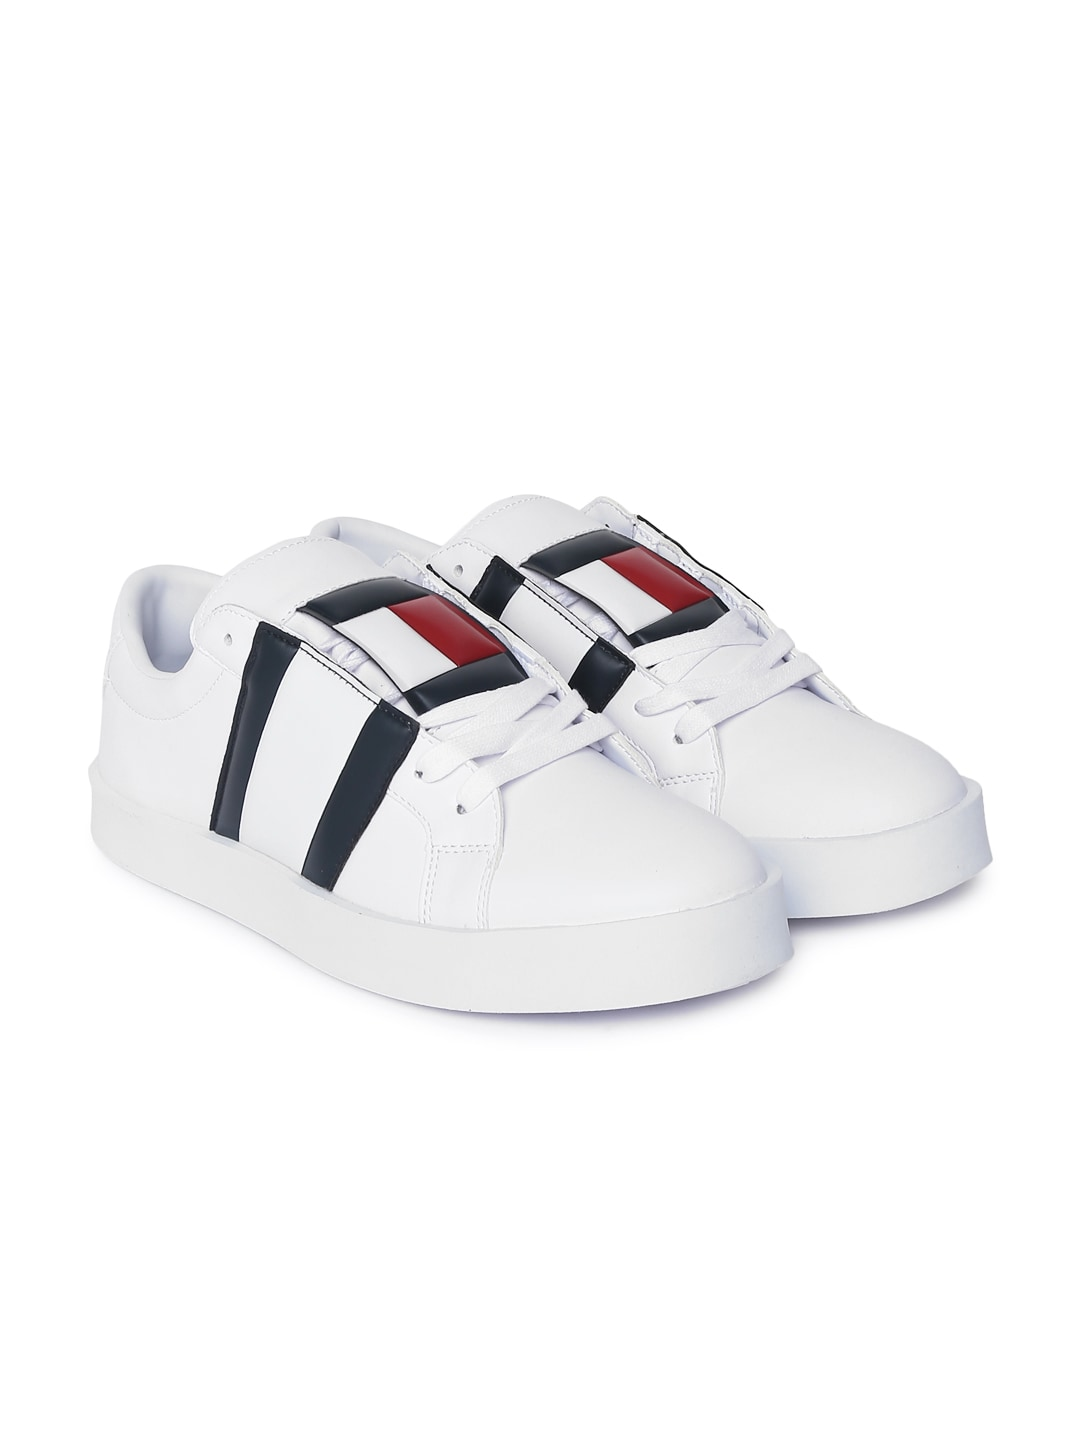 2605aa07 Buy Tommy Hilfiger Men White ICON SPORT FLEXI Sneakers - Casual ...